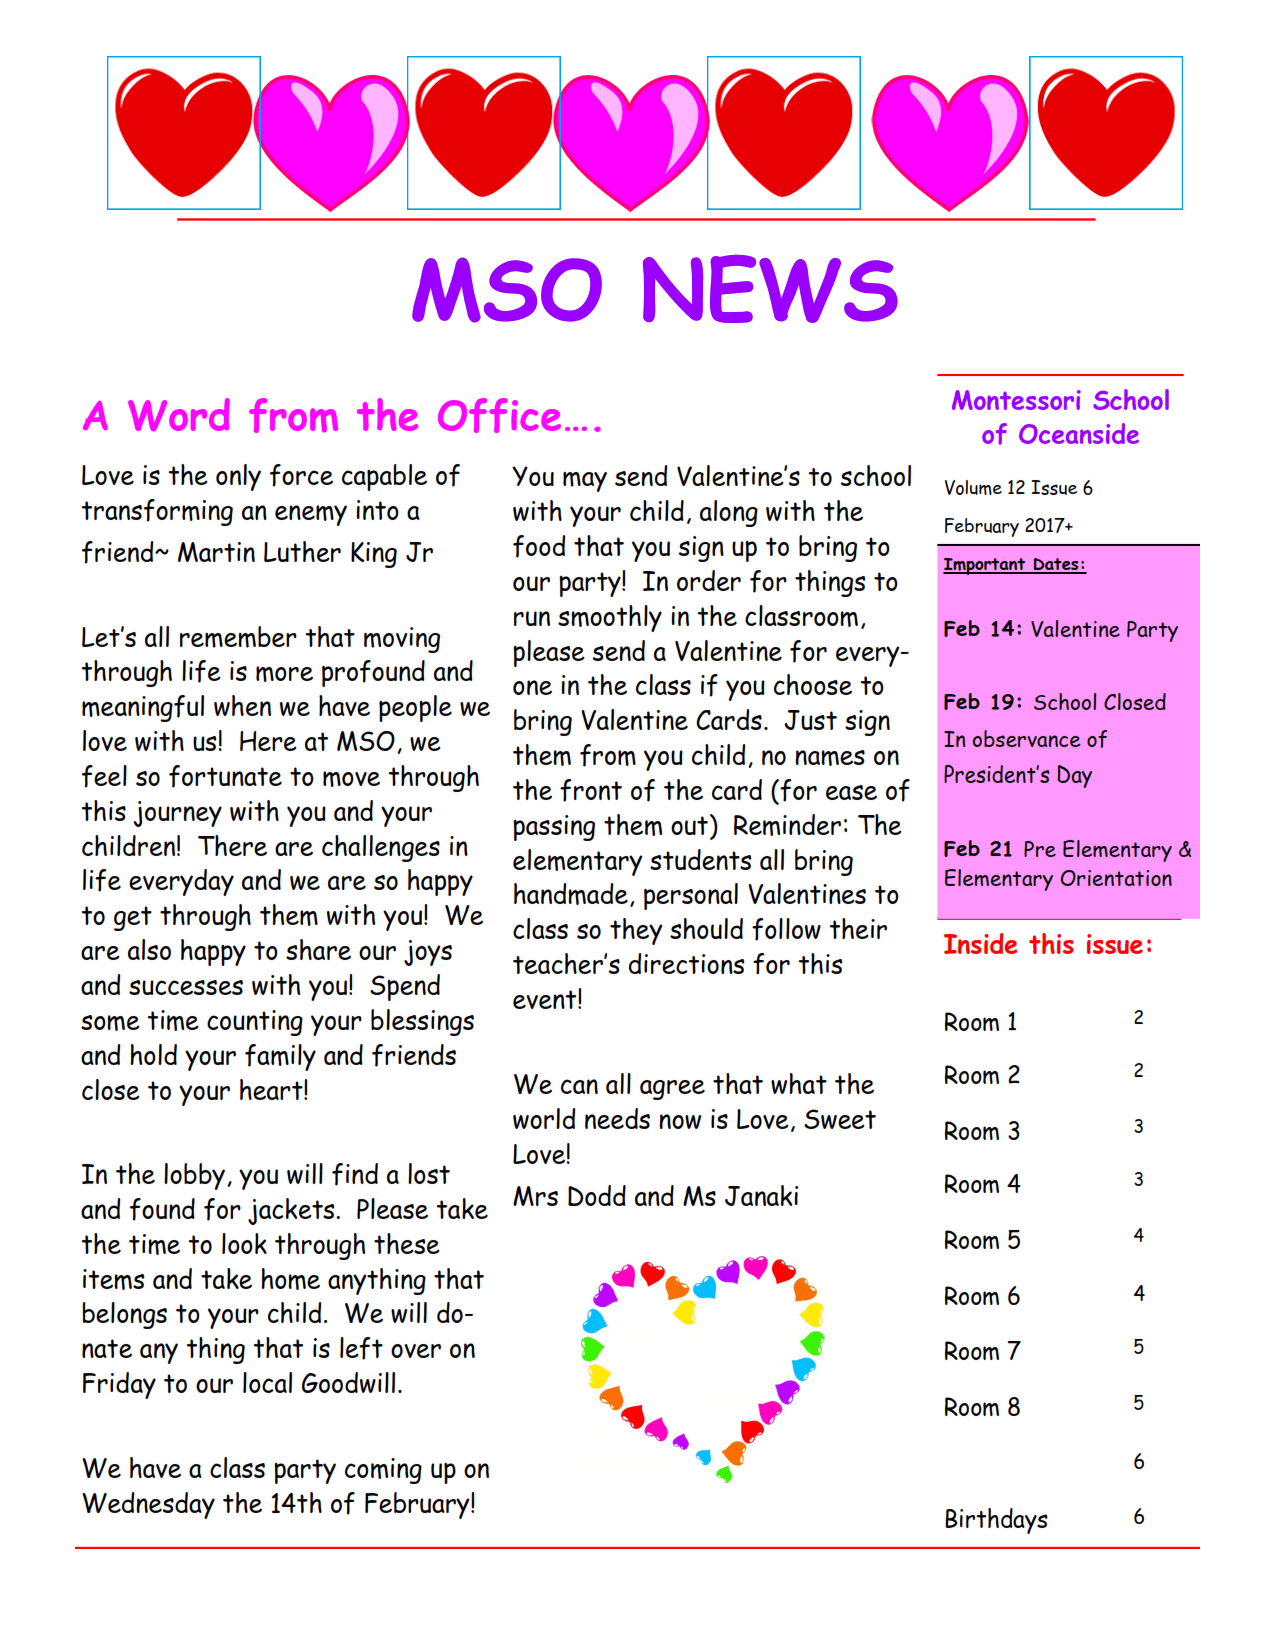 MSO February 2018 Newsletter. A Word from the Office